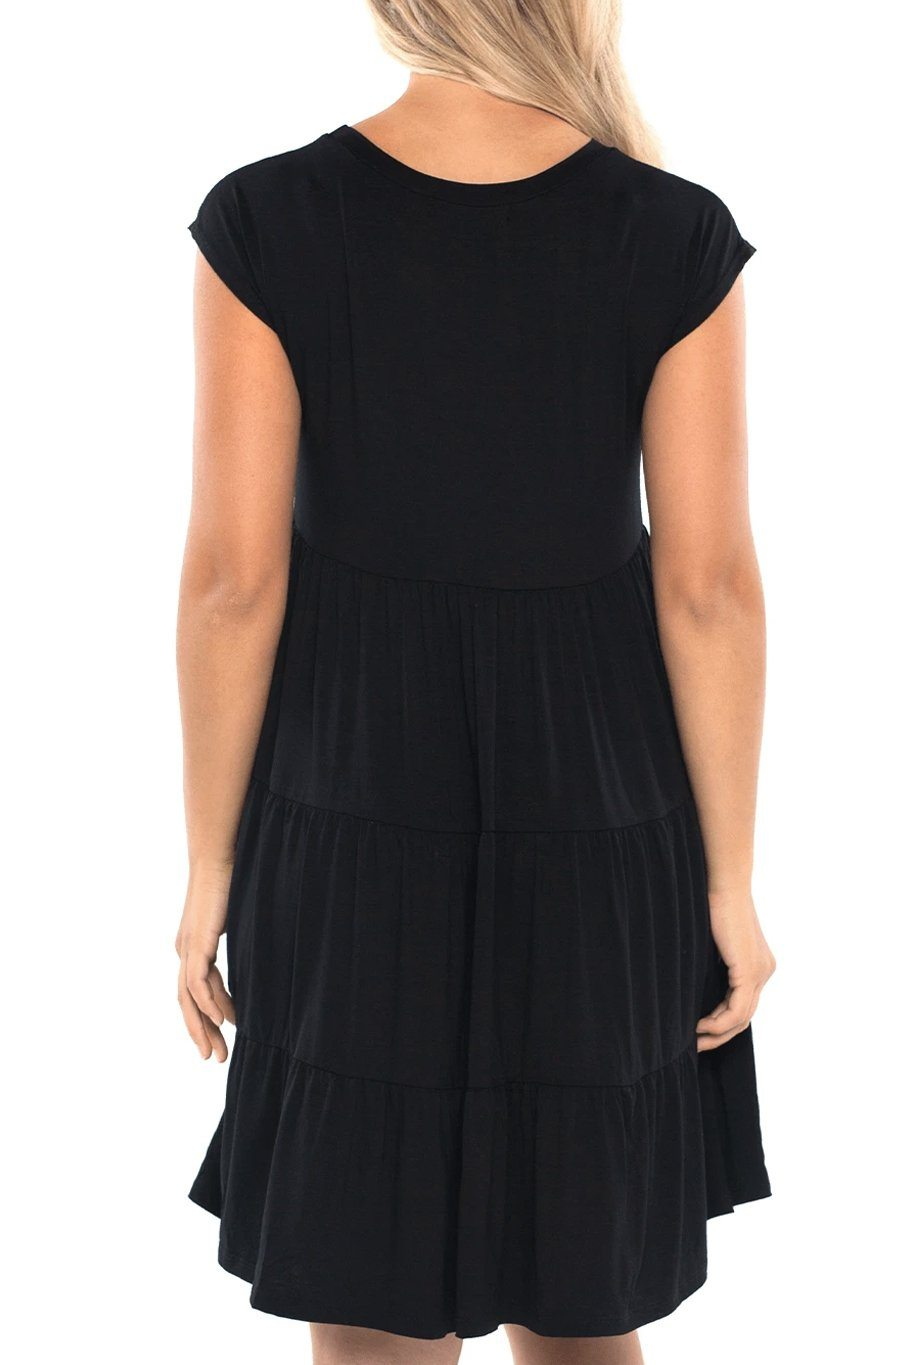 Babydoll Tunic Dress - Black